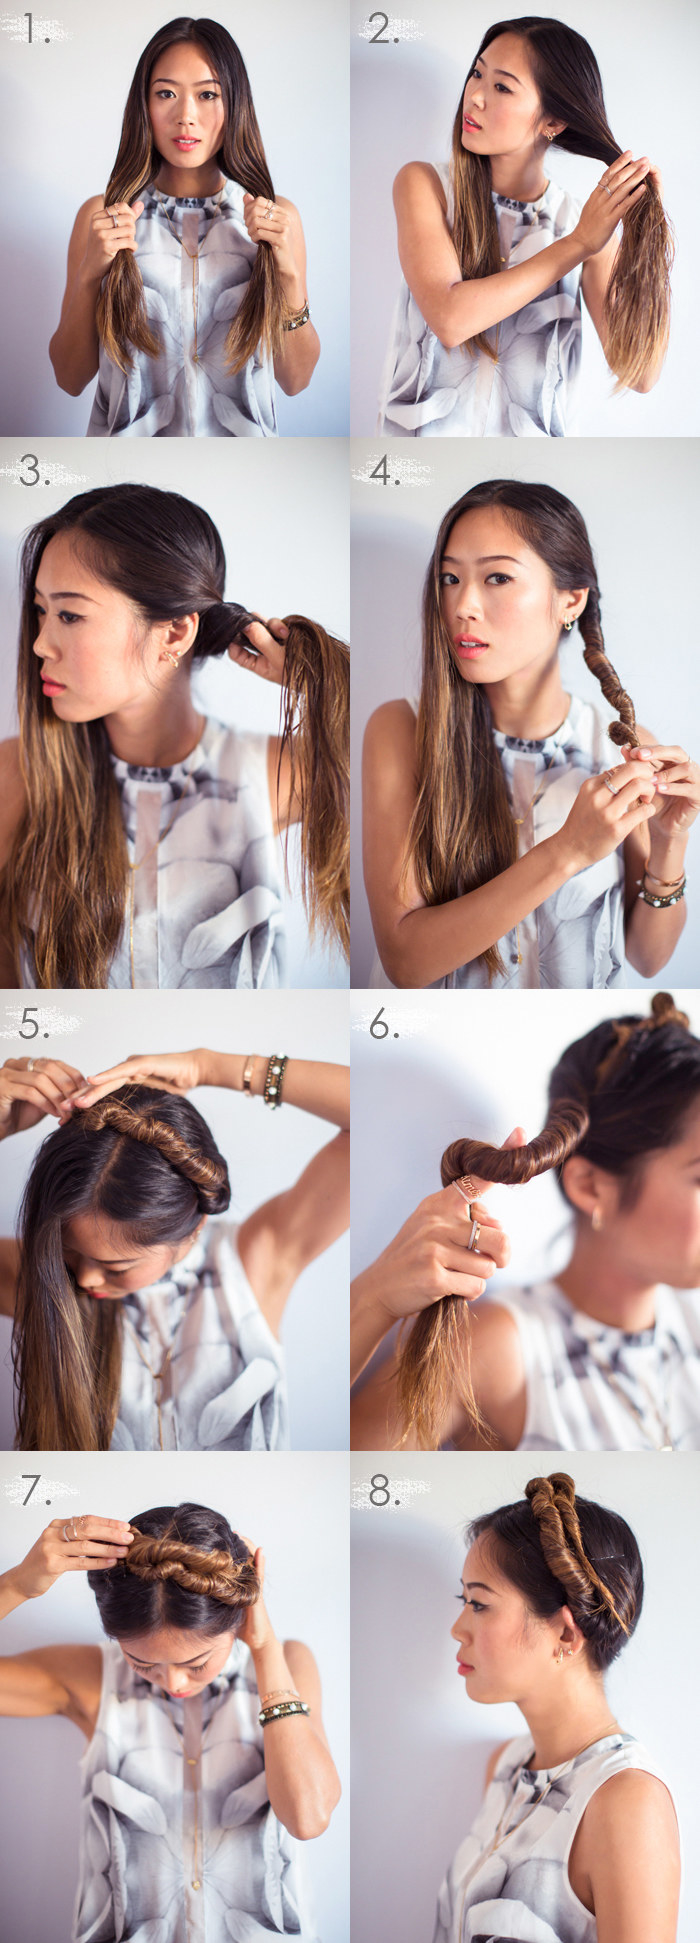 26 Easy Ways To Get The Healthiest Hair Of Your Life